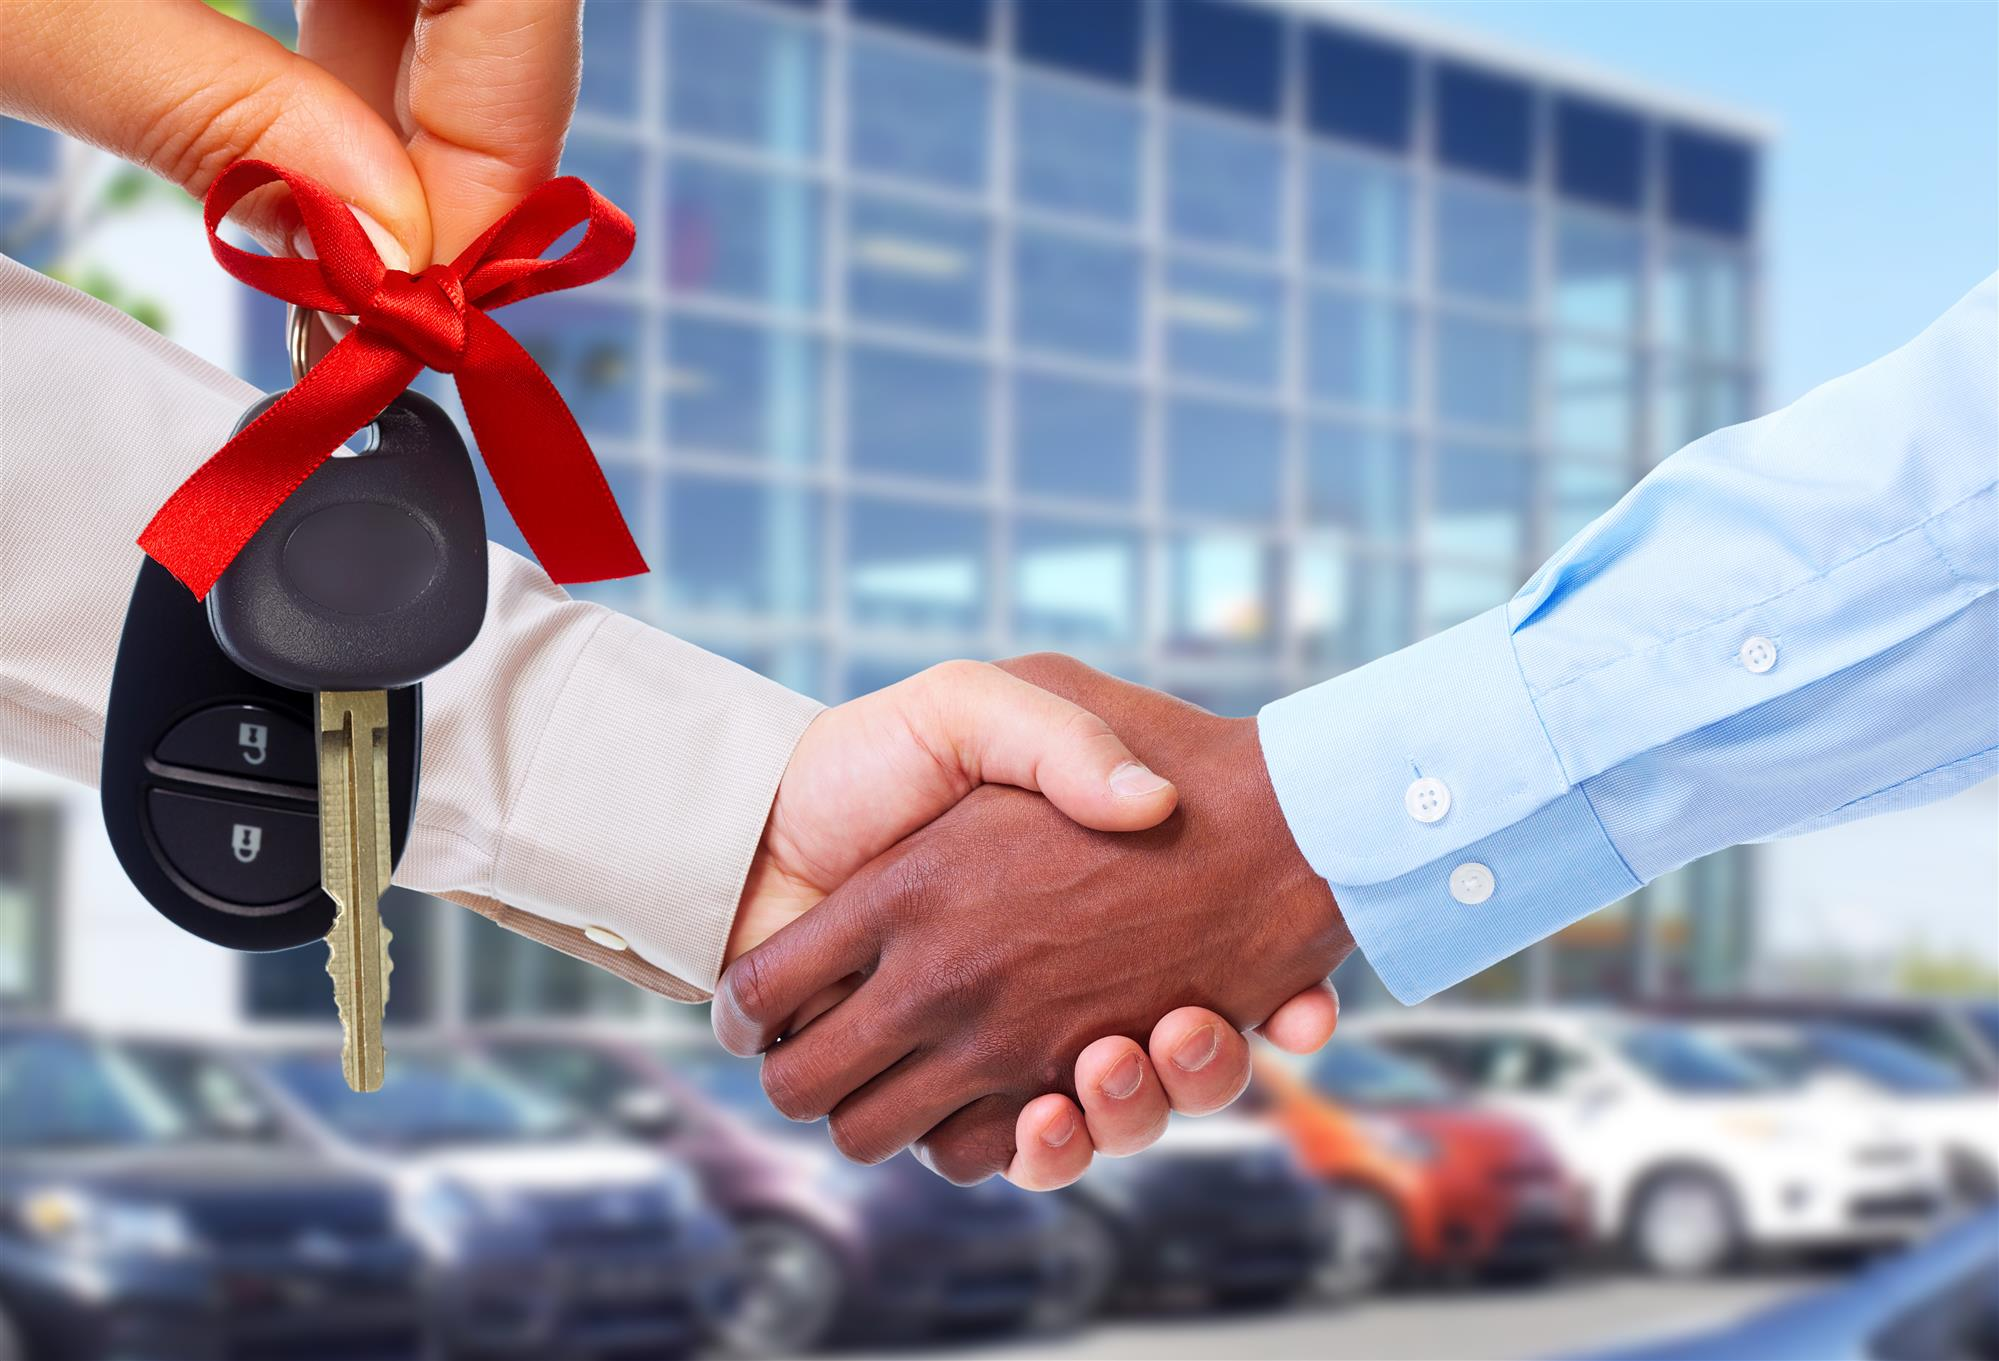 Shaking hands after buying a car